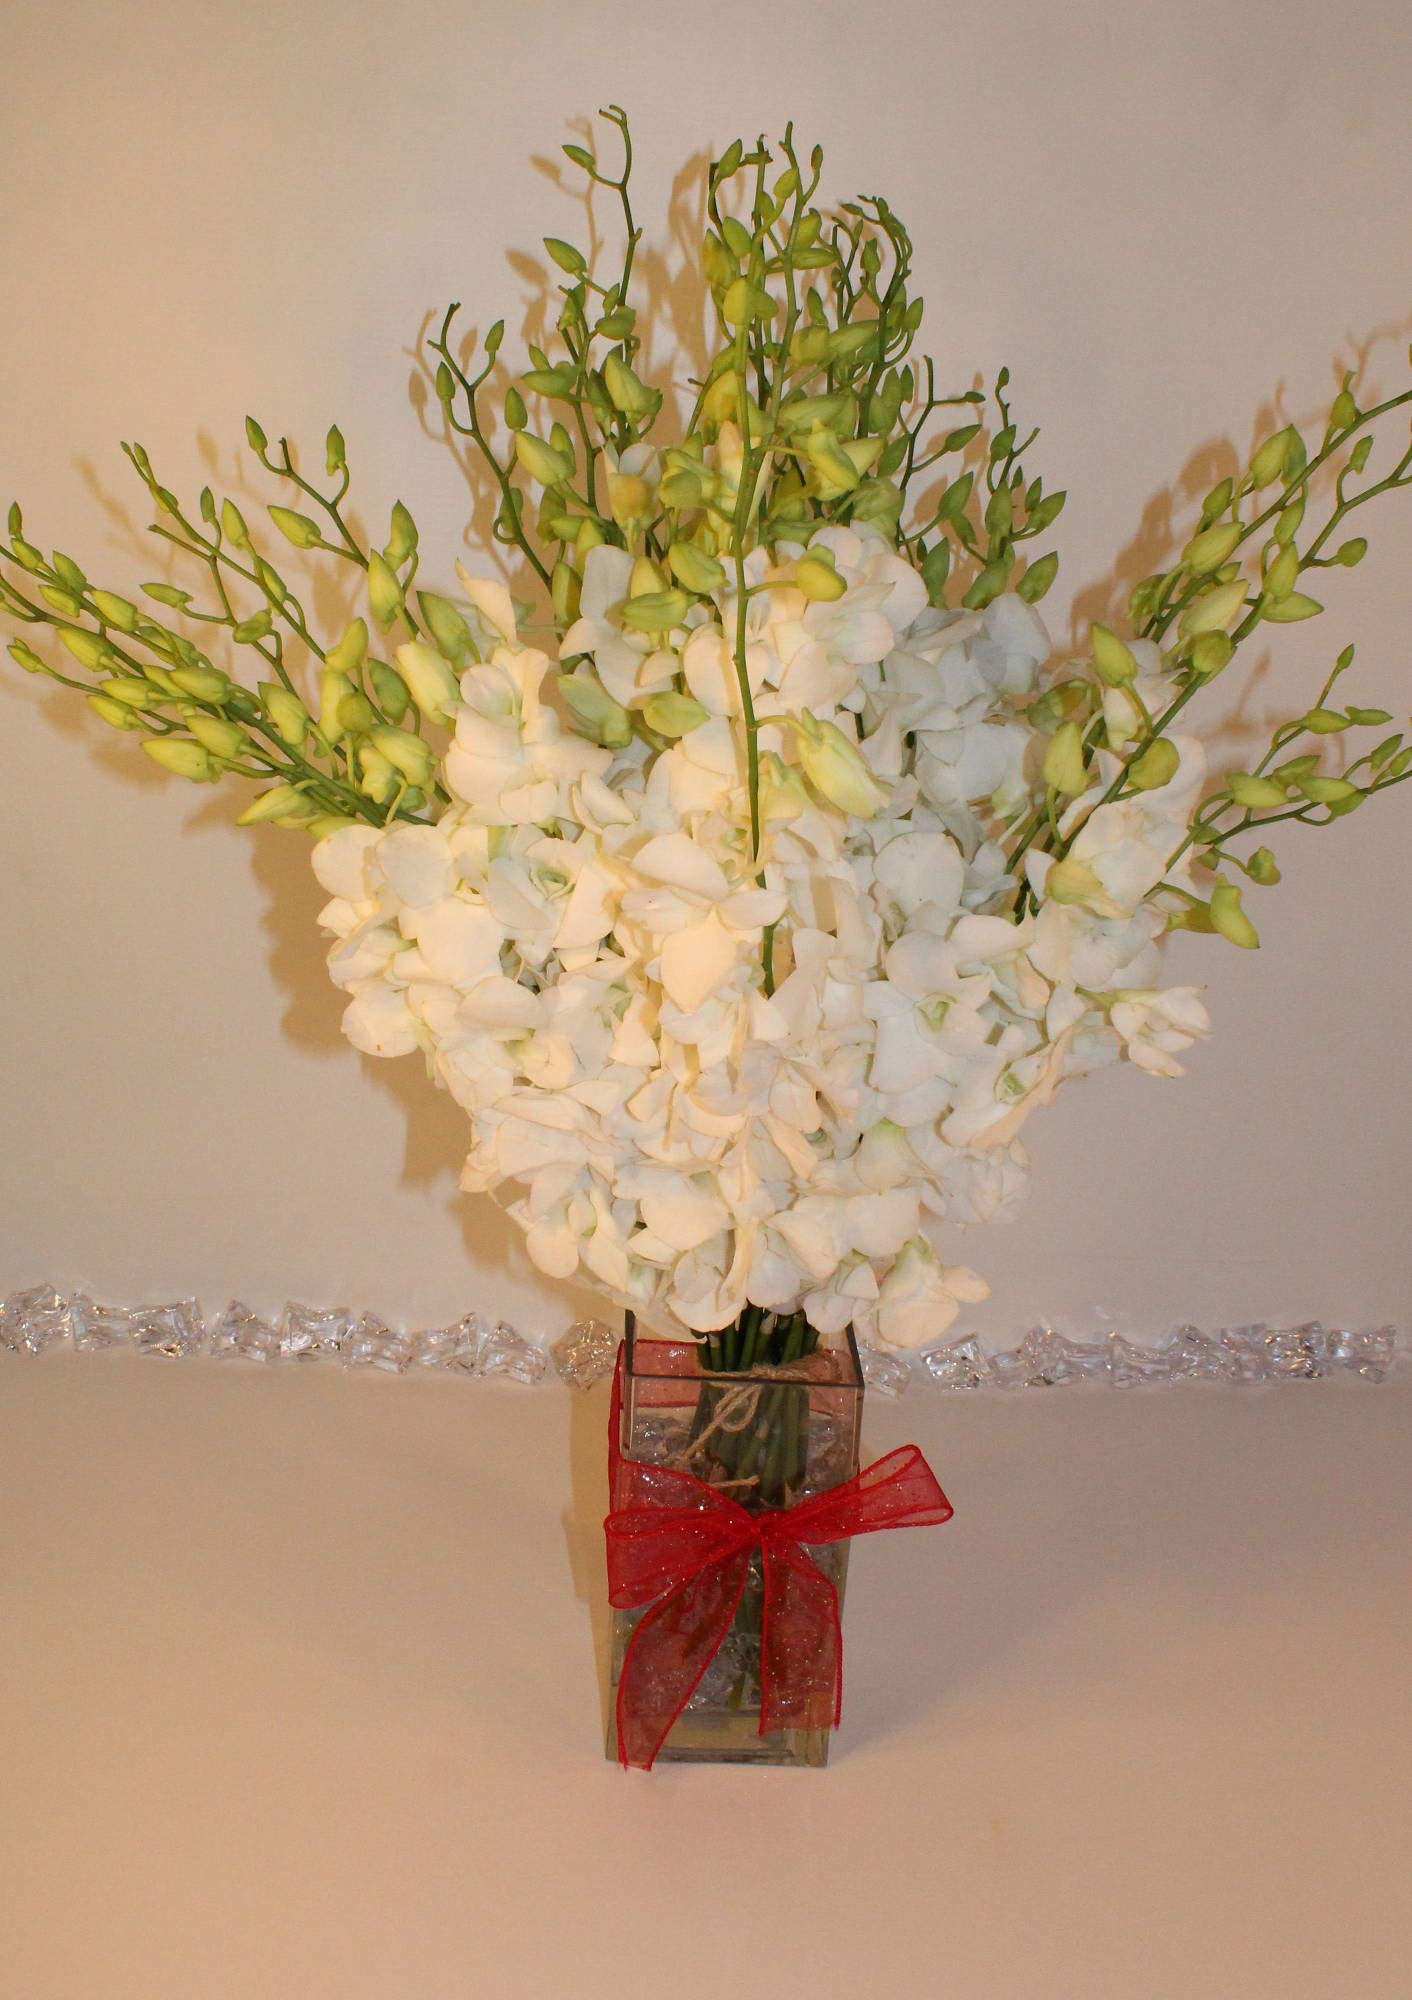 Athena's Garden Mother's Day Special Fresh Cut Snow White Orchid Bouquet for Love, 30 Stems with Glass Vase, by Athena's Garden